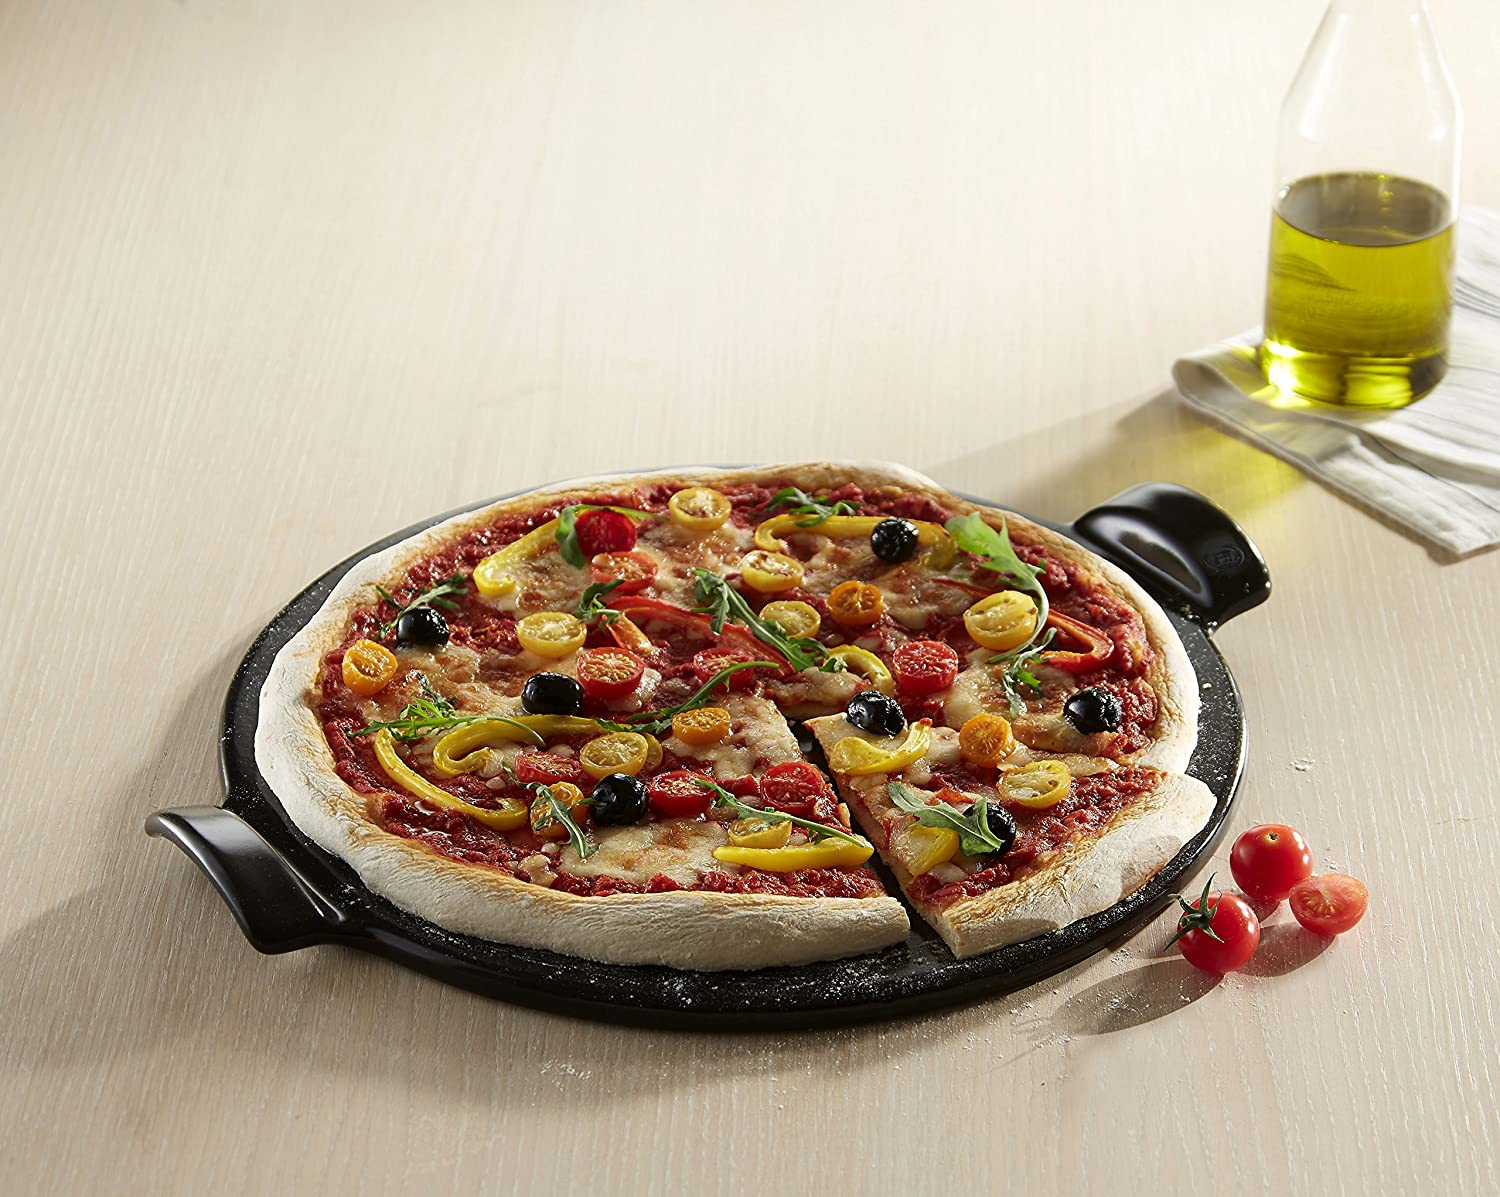 Bed bath beyond pizza stone - Amazon Com Emile Henry Made In France Flame Top Pizza Stone Black Perfect For Pizzas Or Breads In The Oven On Top Of The Bbq